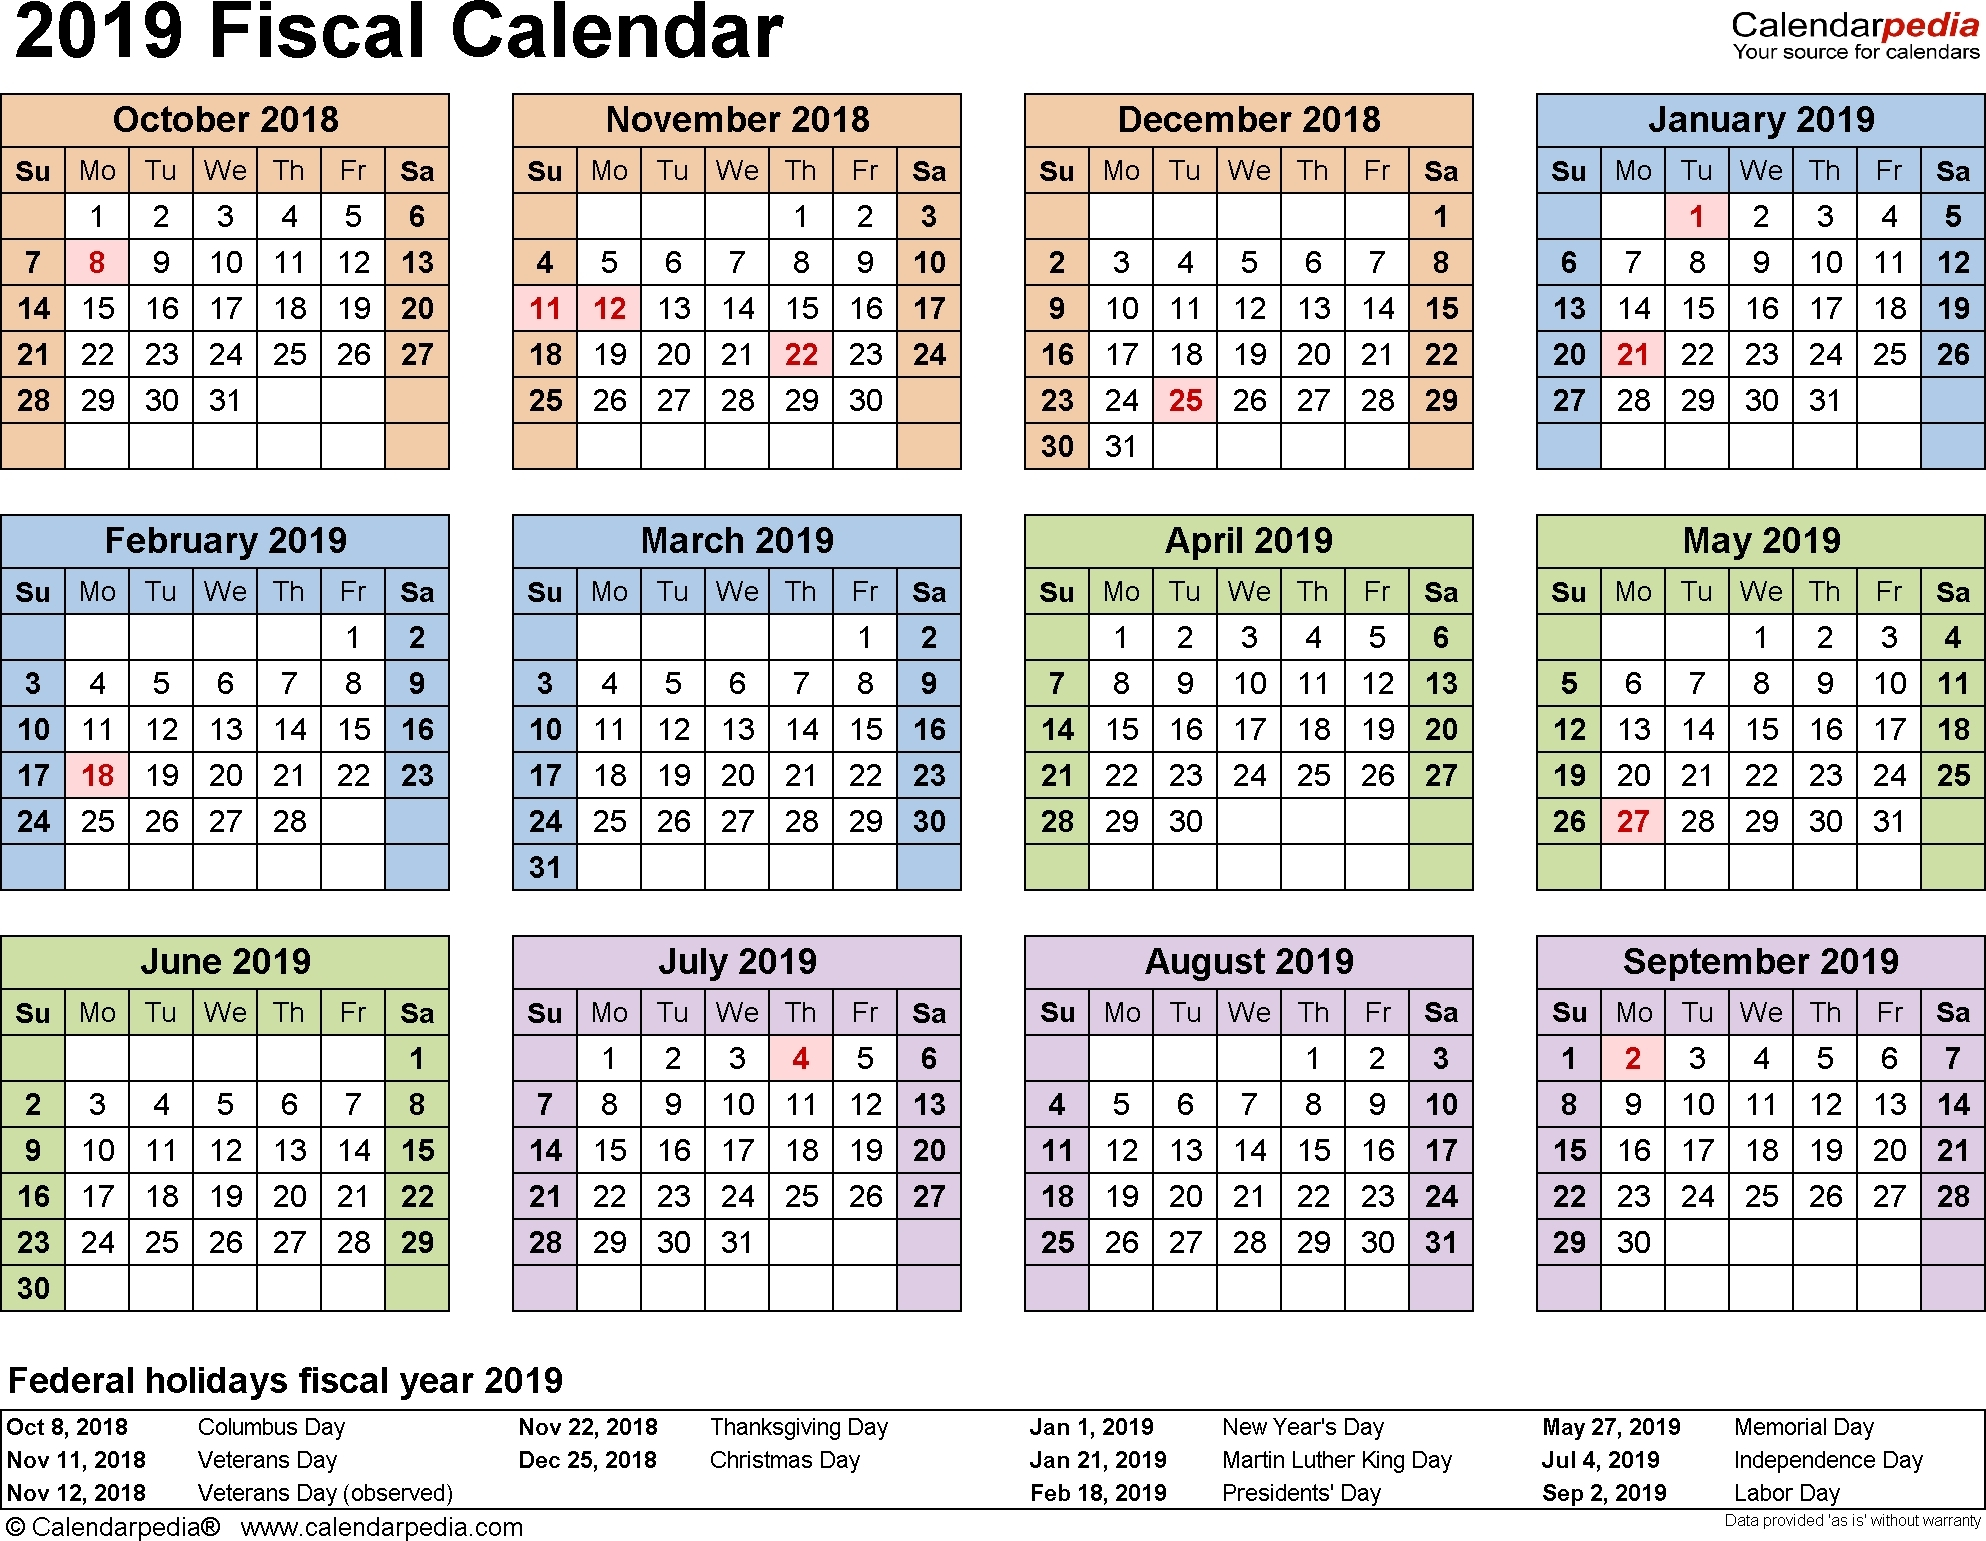 2019-2020 Calendar Financial Week Numbers - Calendar pertaining to Financial Calendar 2019 With Week Numbers